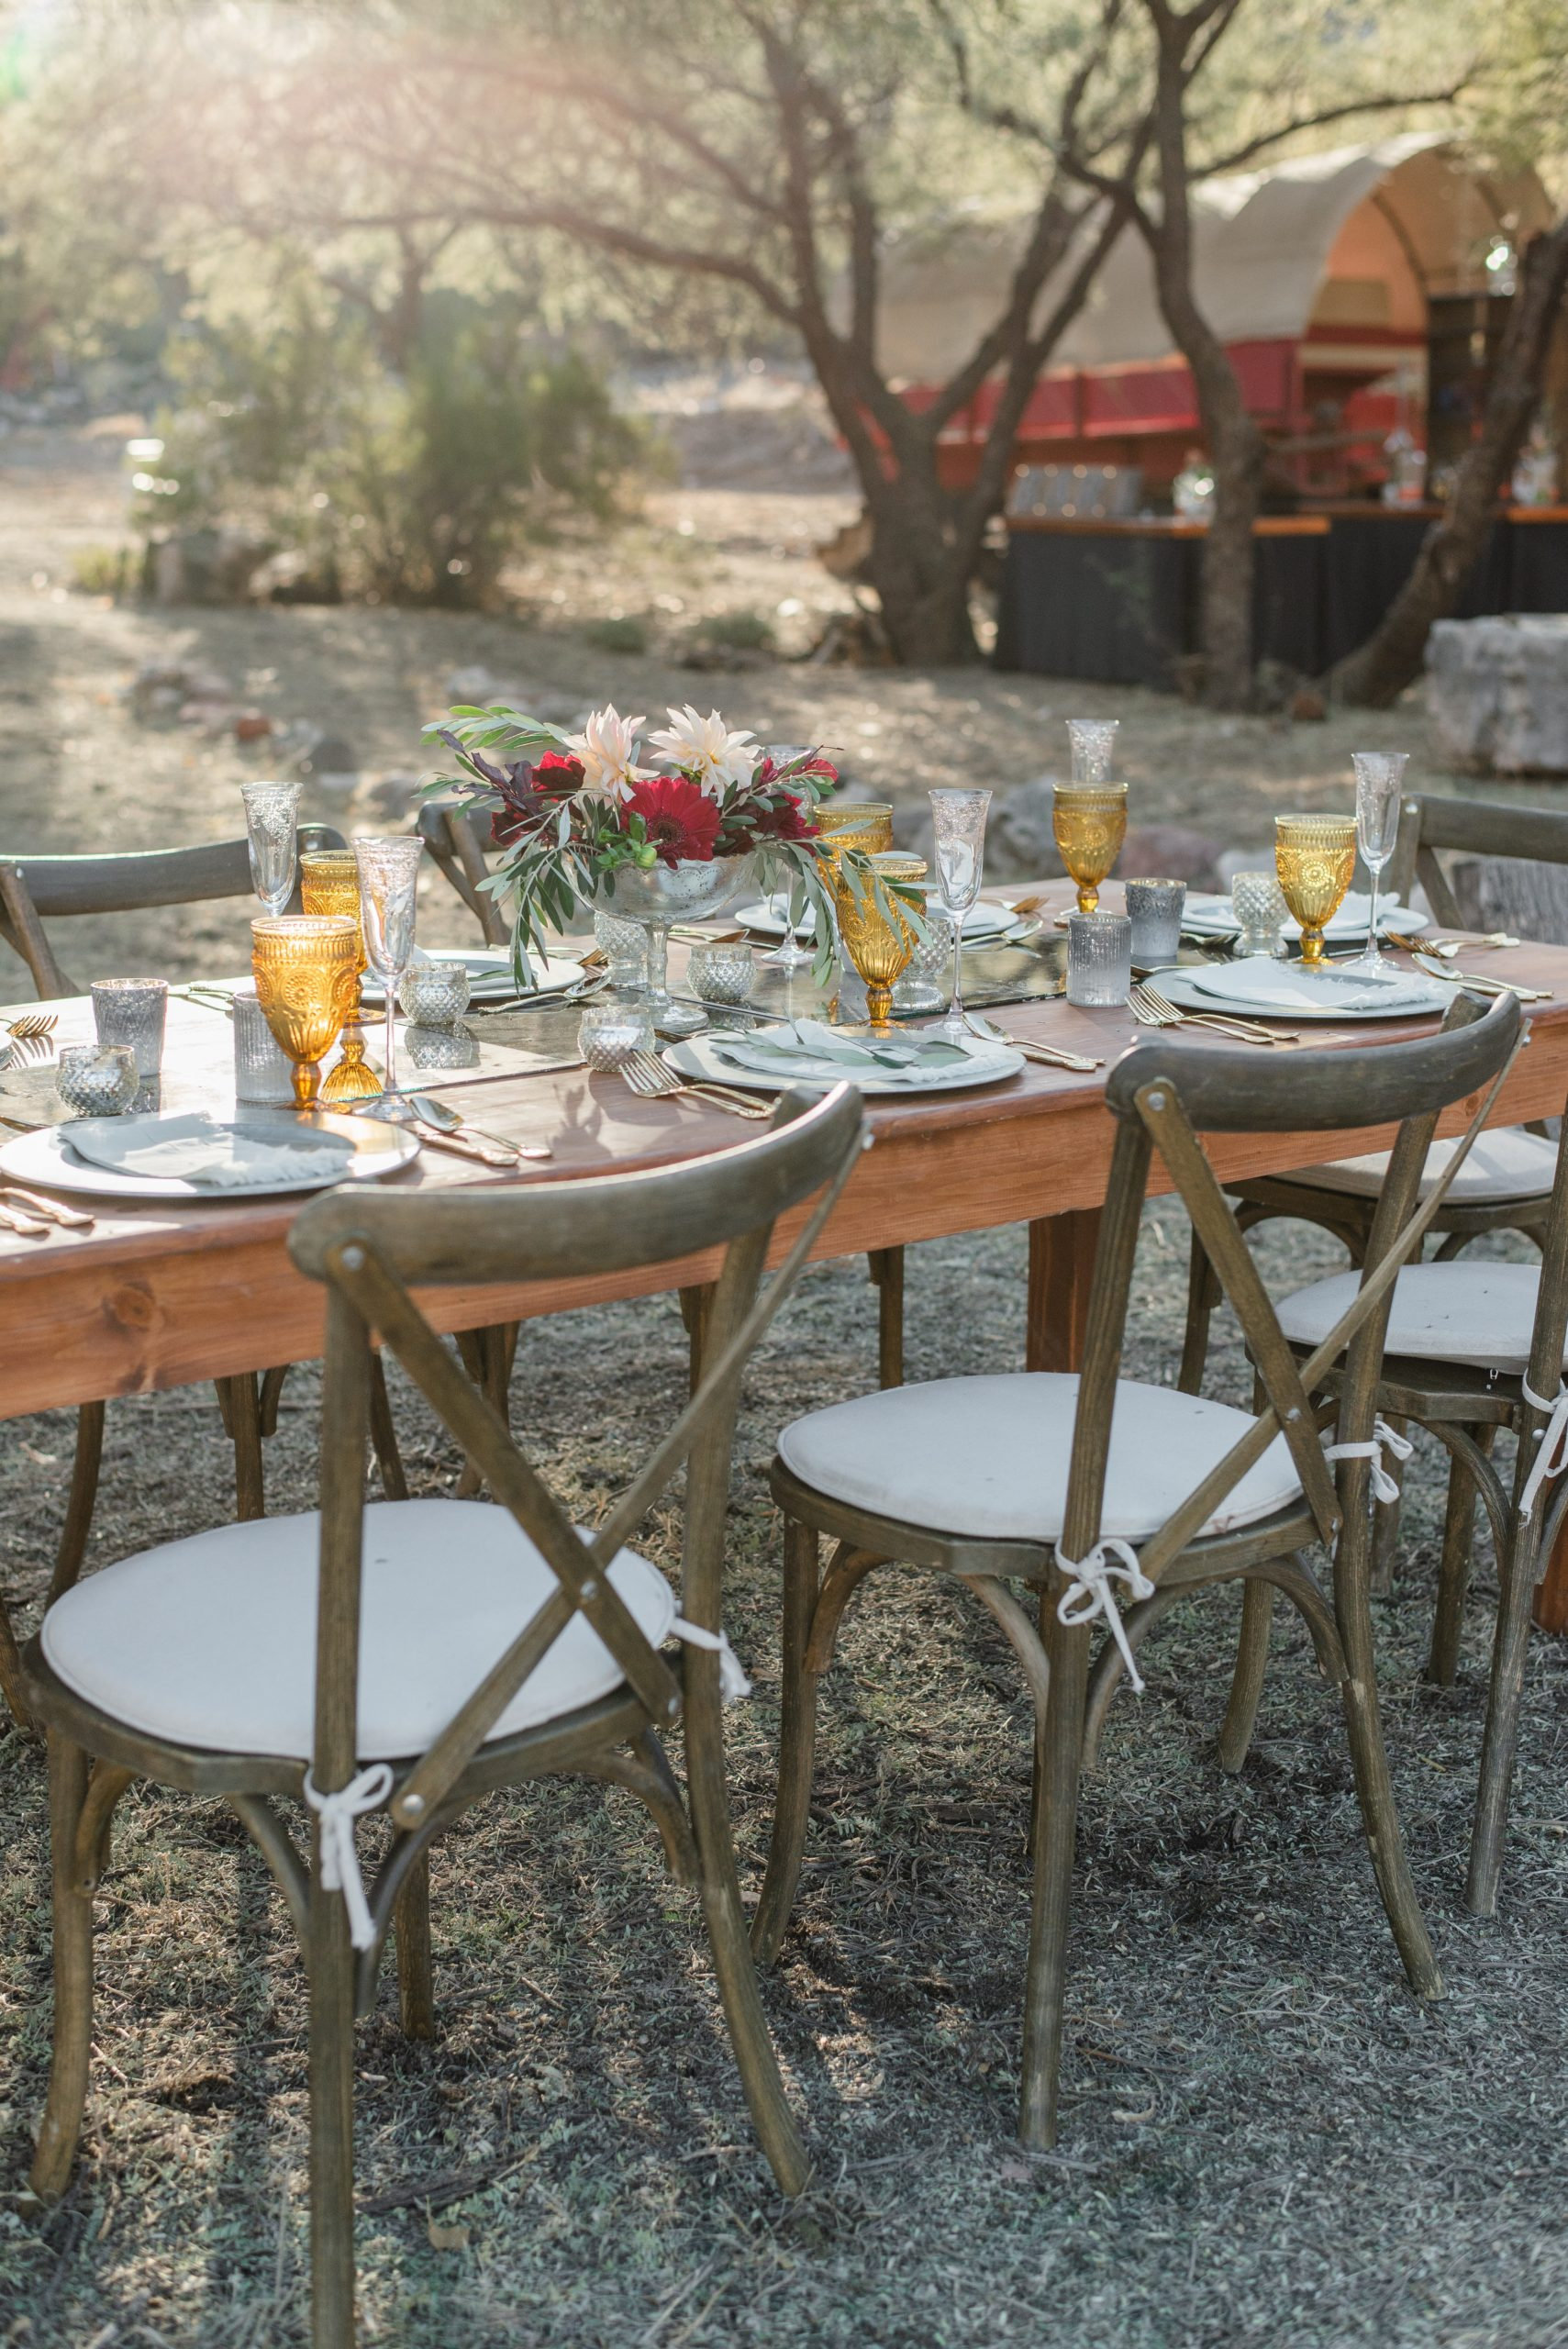 banquet-table-in-sunny-backyard-4558316